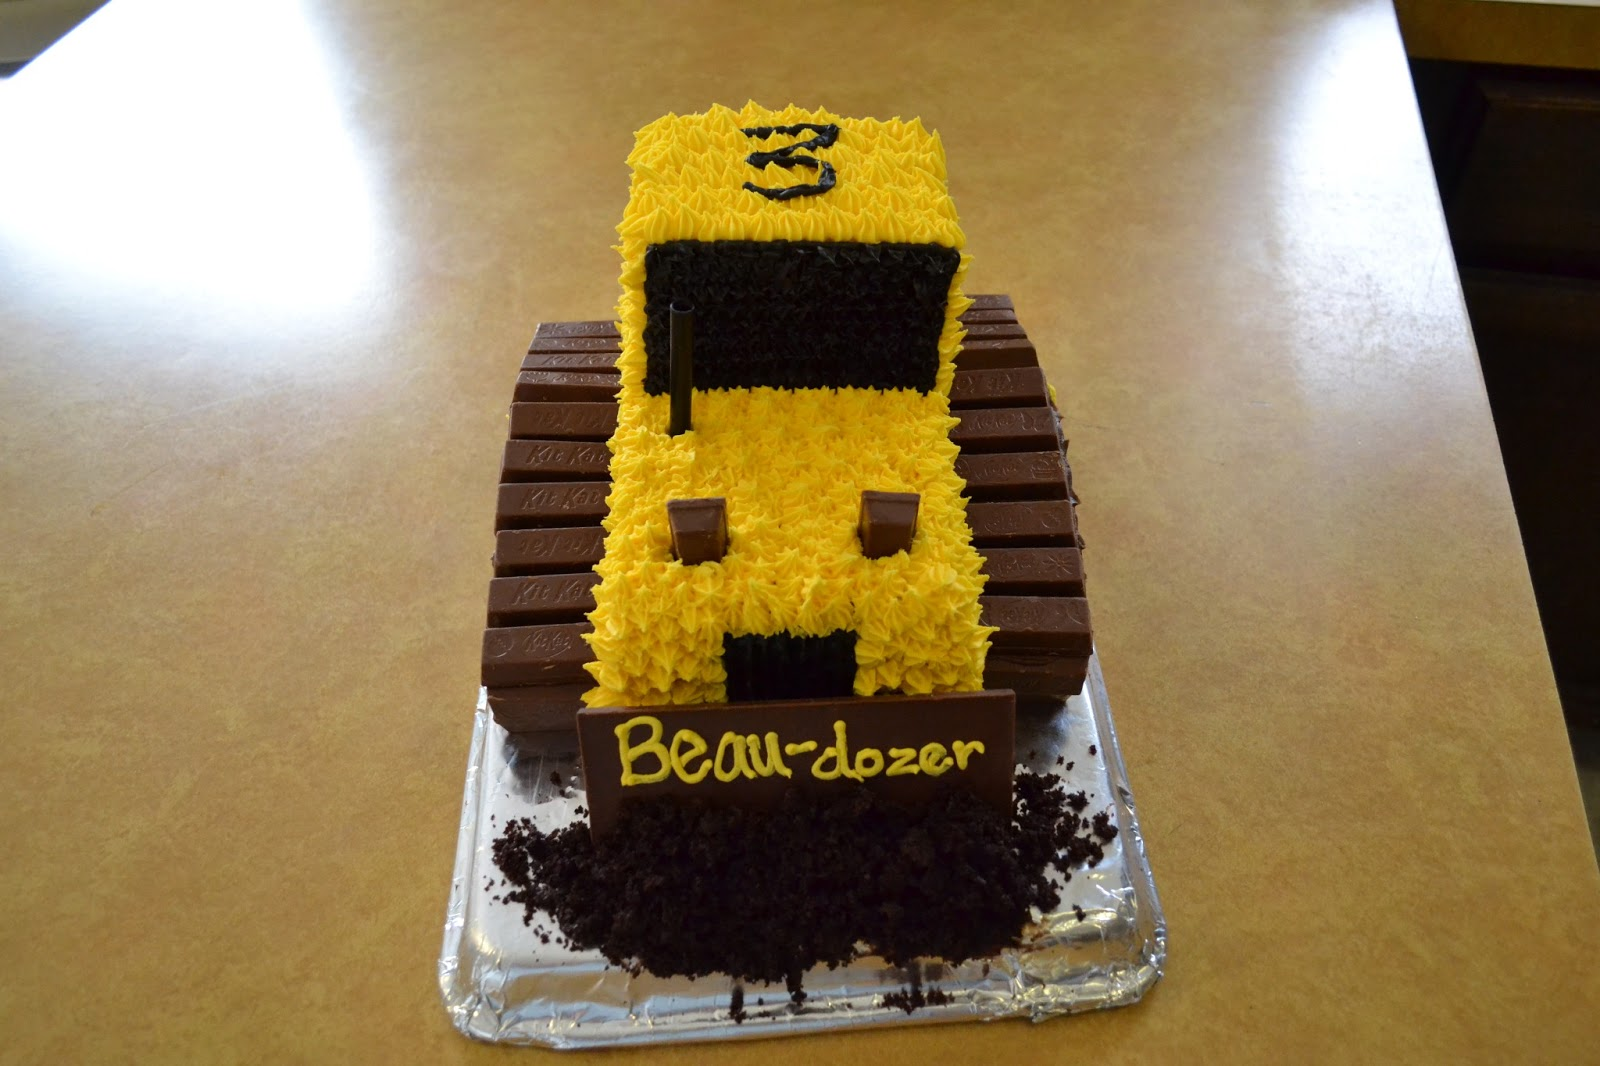 School Of Natalie Bulldozer Cake With Kit Kats